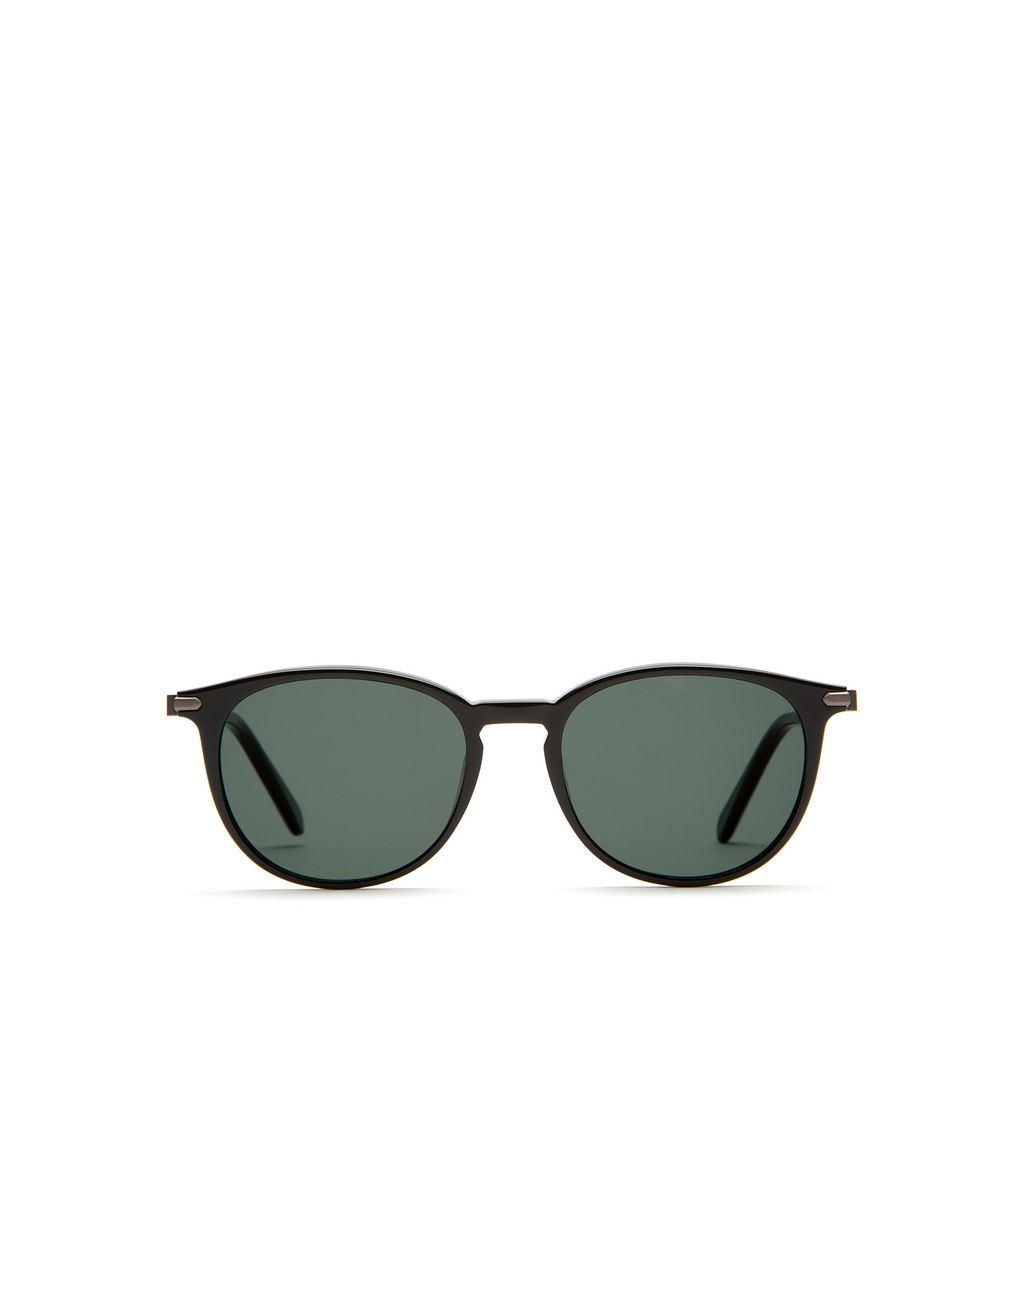 BRIONI Shiny Black Retro Pantos Sunglasses Sunglasses [*** pickupInStoreShippingNotGuaranteed_info ***] f